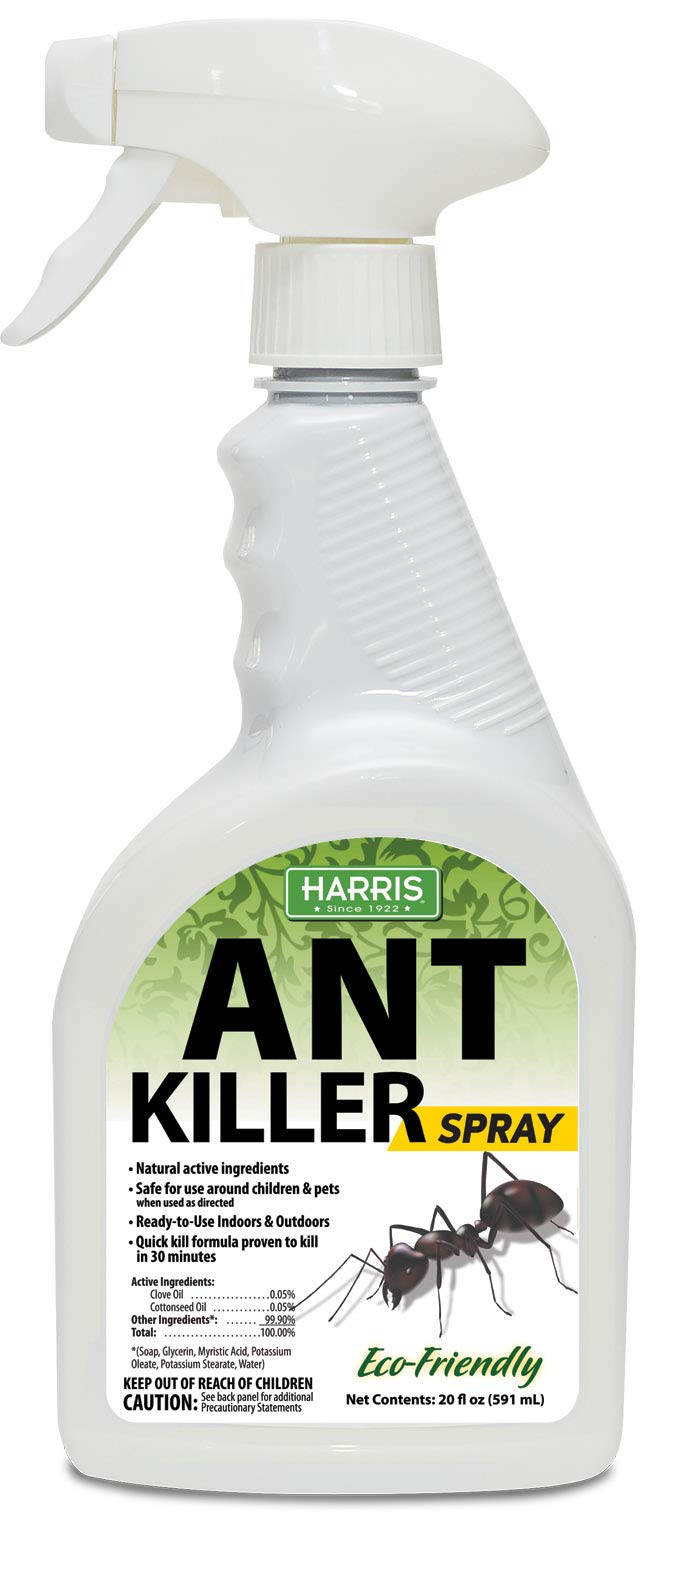 Harris New Ant Spray, Natural Plant Oil Based Quick Kill Formula for Indoor and Outdoor Use, 20oz by Harris